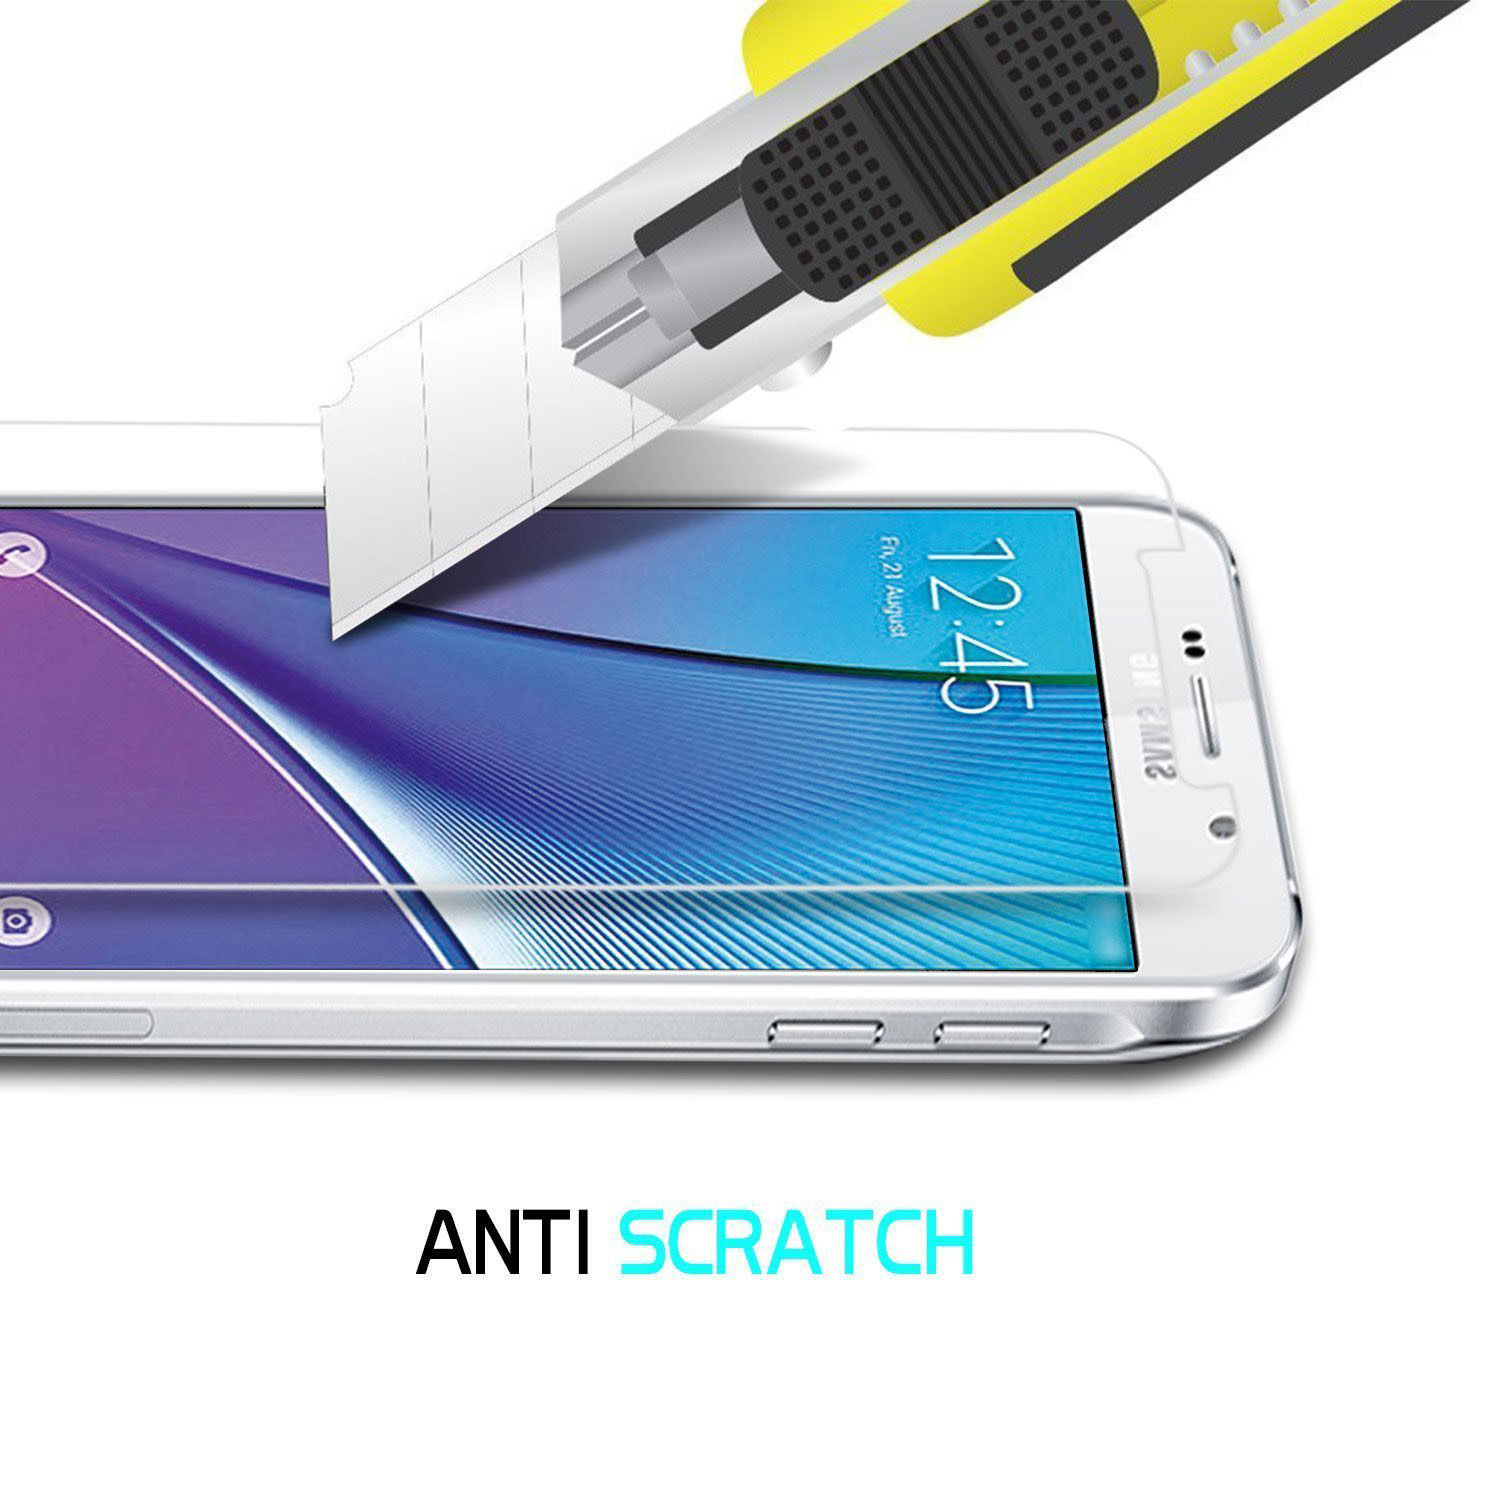 Гаджет  9H Clear Tempered Glass Protective Screen Protector Film for 4.3 Samsung Galaxy J1/J100/J100F None Бытовая электроника